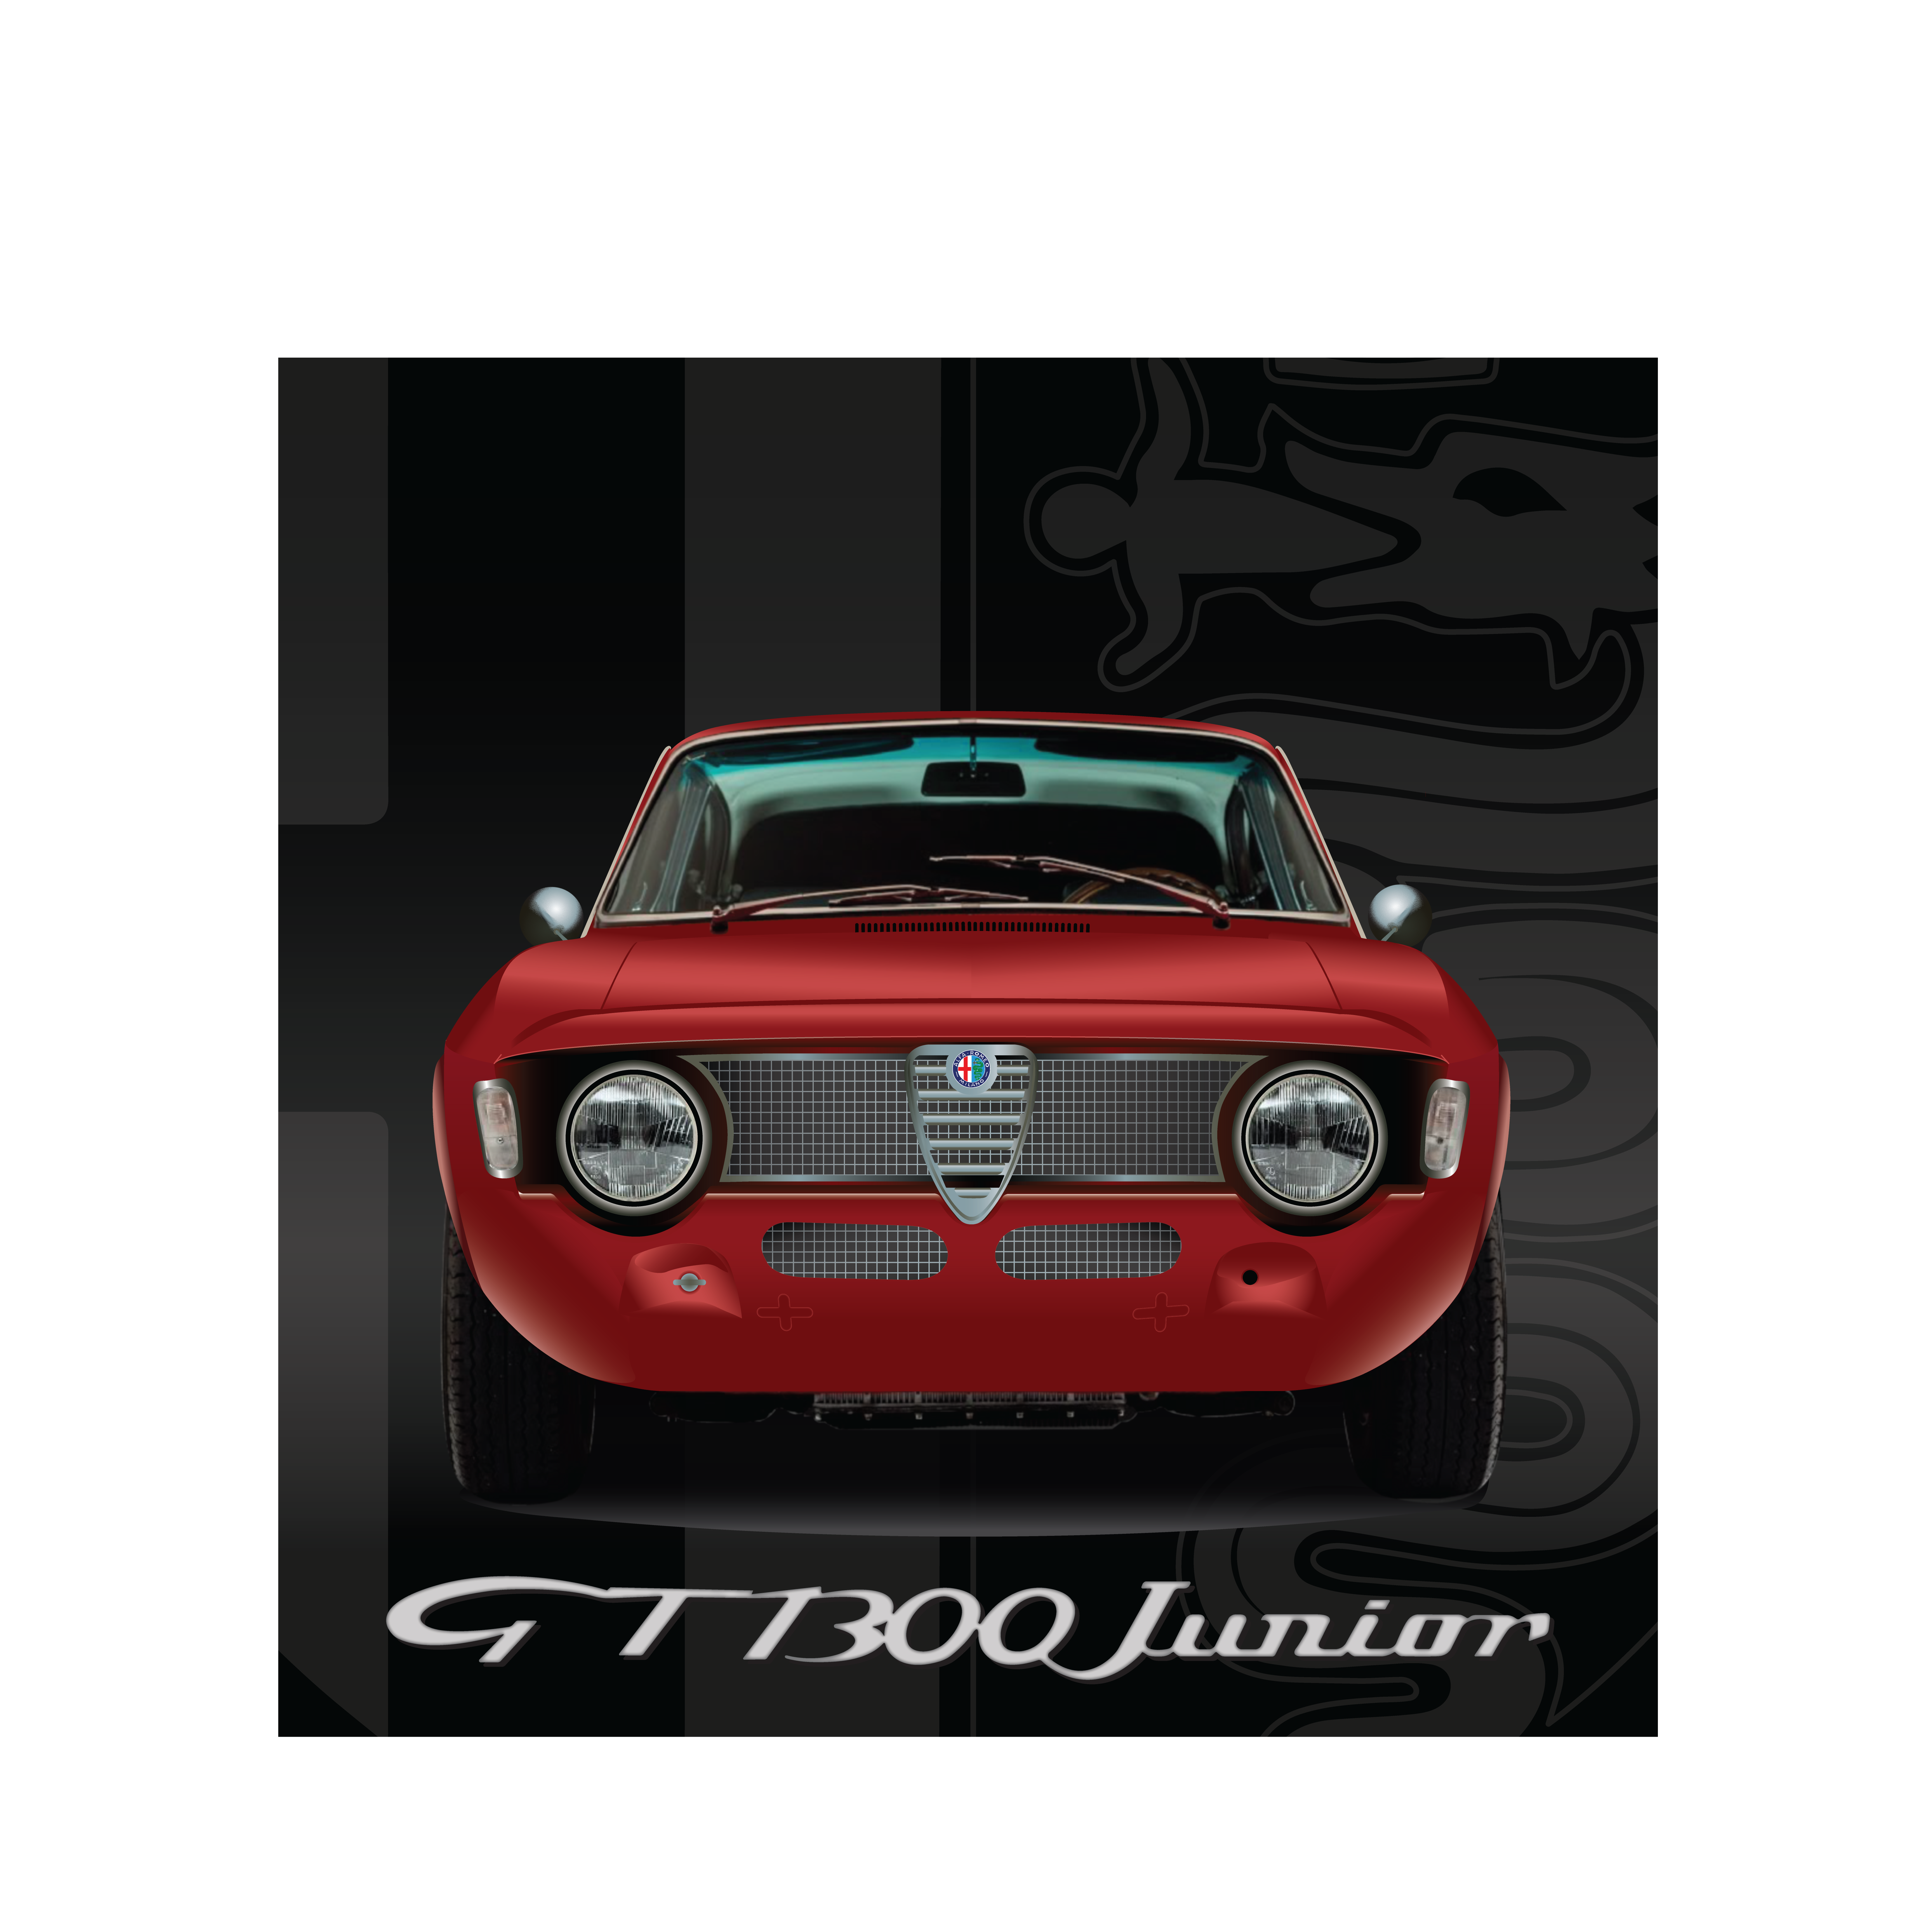 See This And More Of My Alfa Romeo Related Artwork Available On All - Alfa romeo merchandise